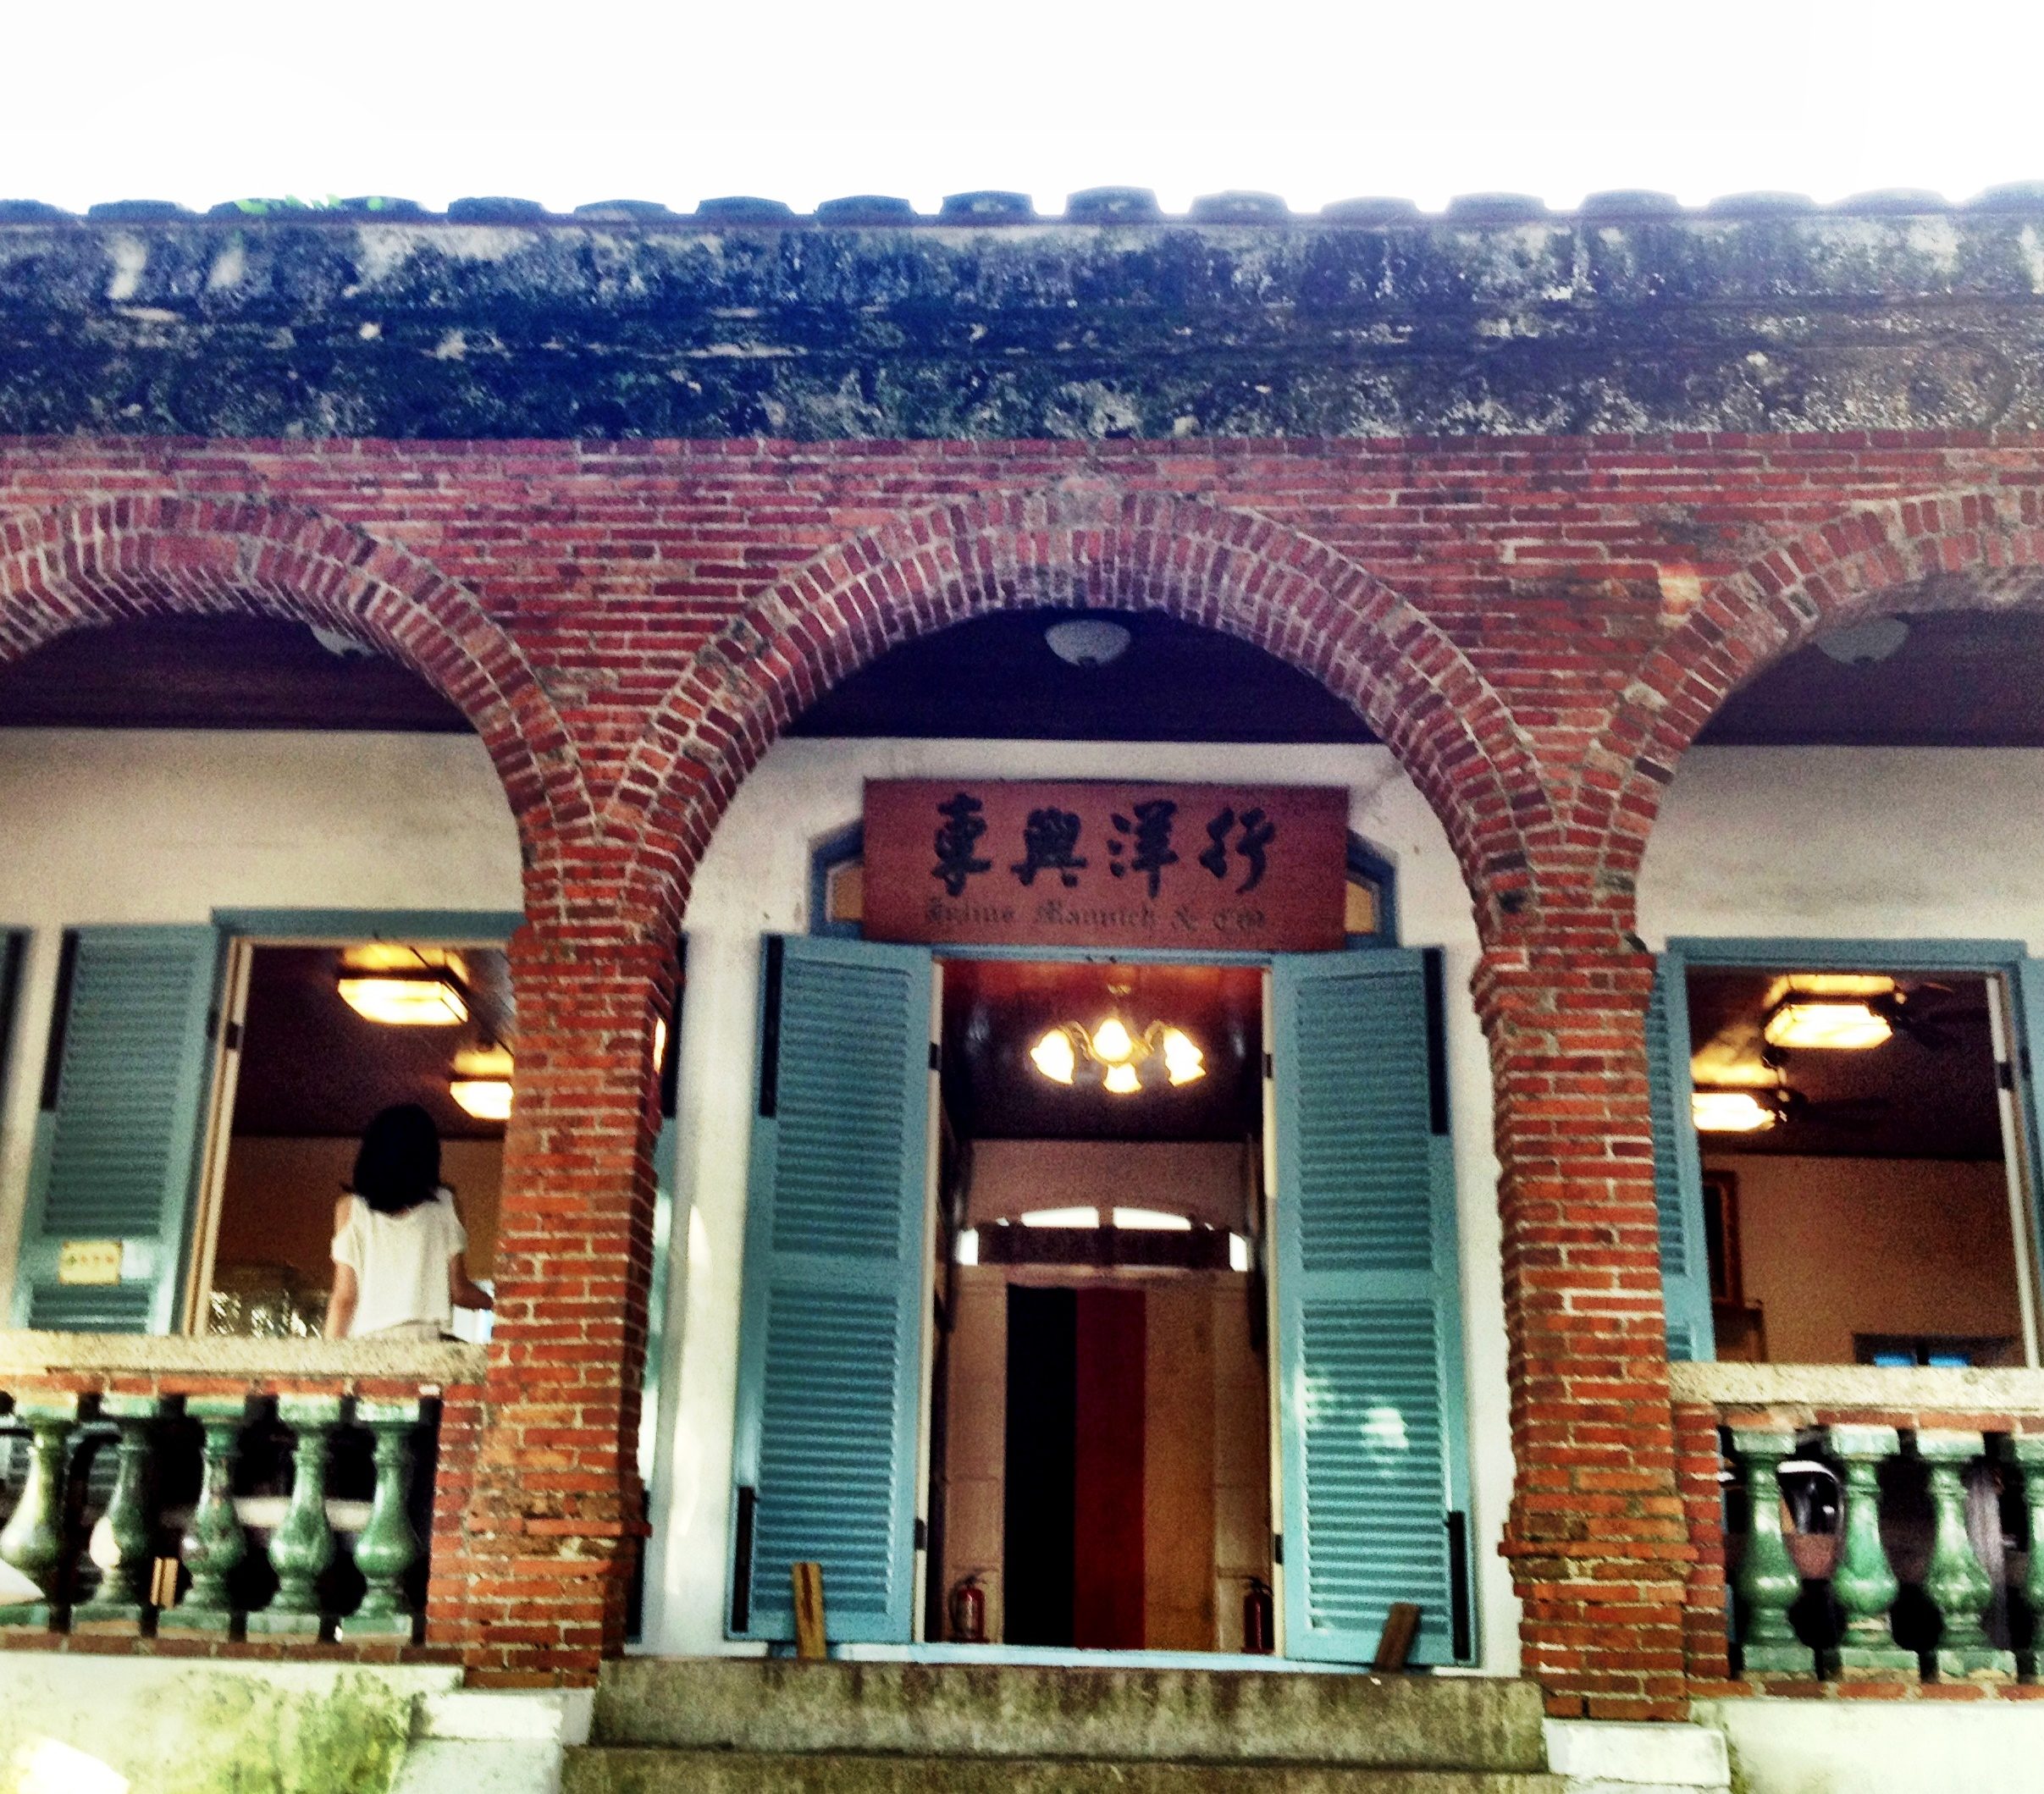 臺灣臺南東興洋行 Julius Mannich & CO. in Tainan, TAIWAN.jpg